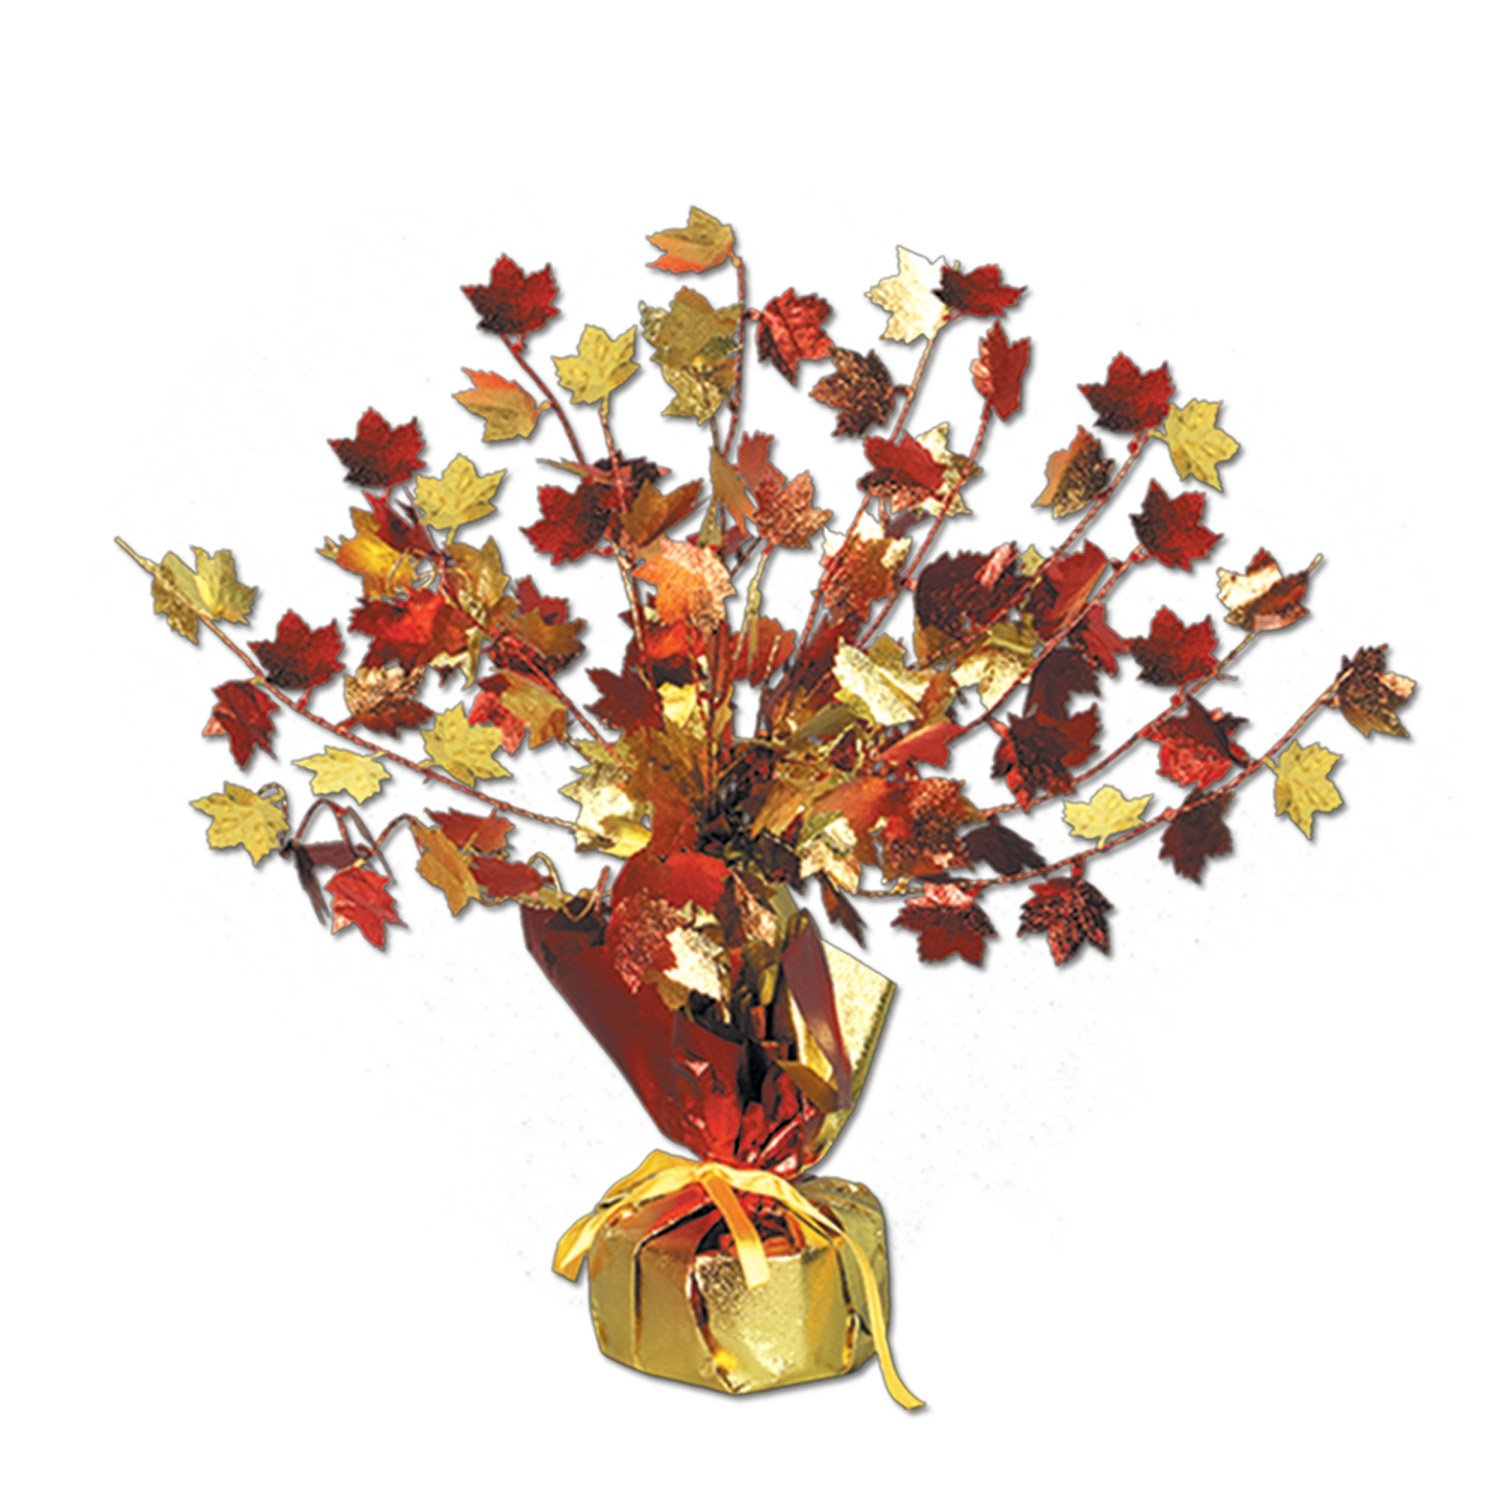 Beistle 1-Pack Decorative Fall Leaves Gleam and Burst Centerpiece, 15-Inch The Beistle Company 90805